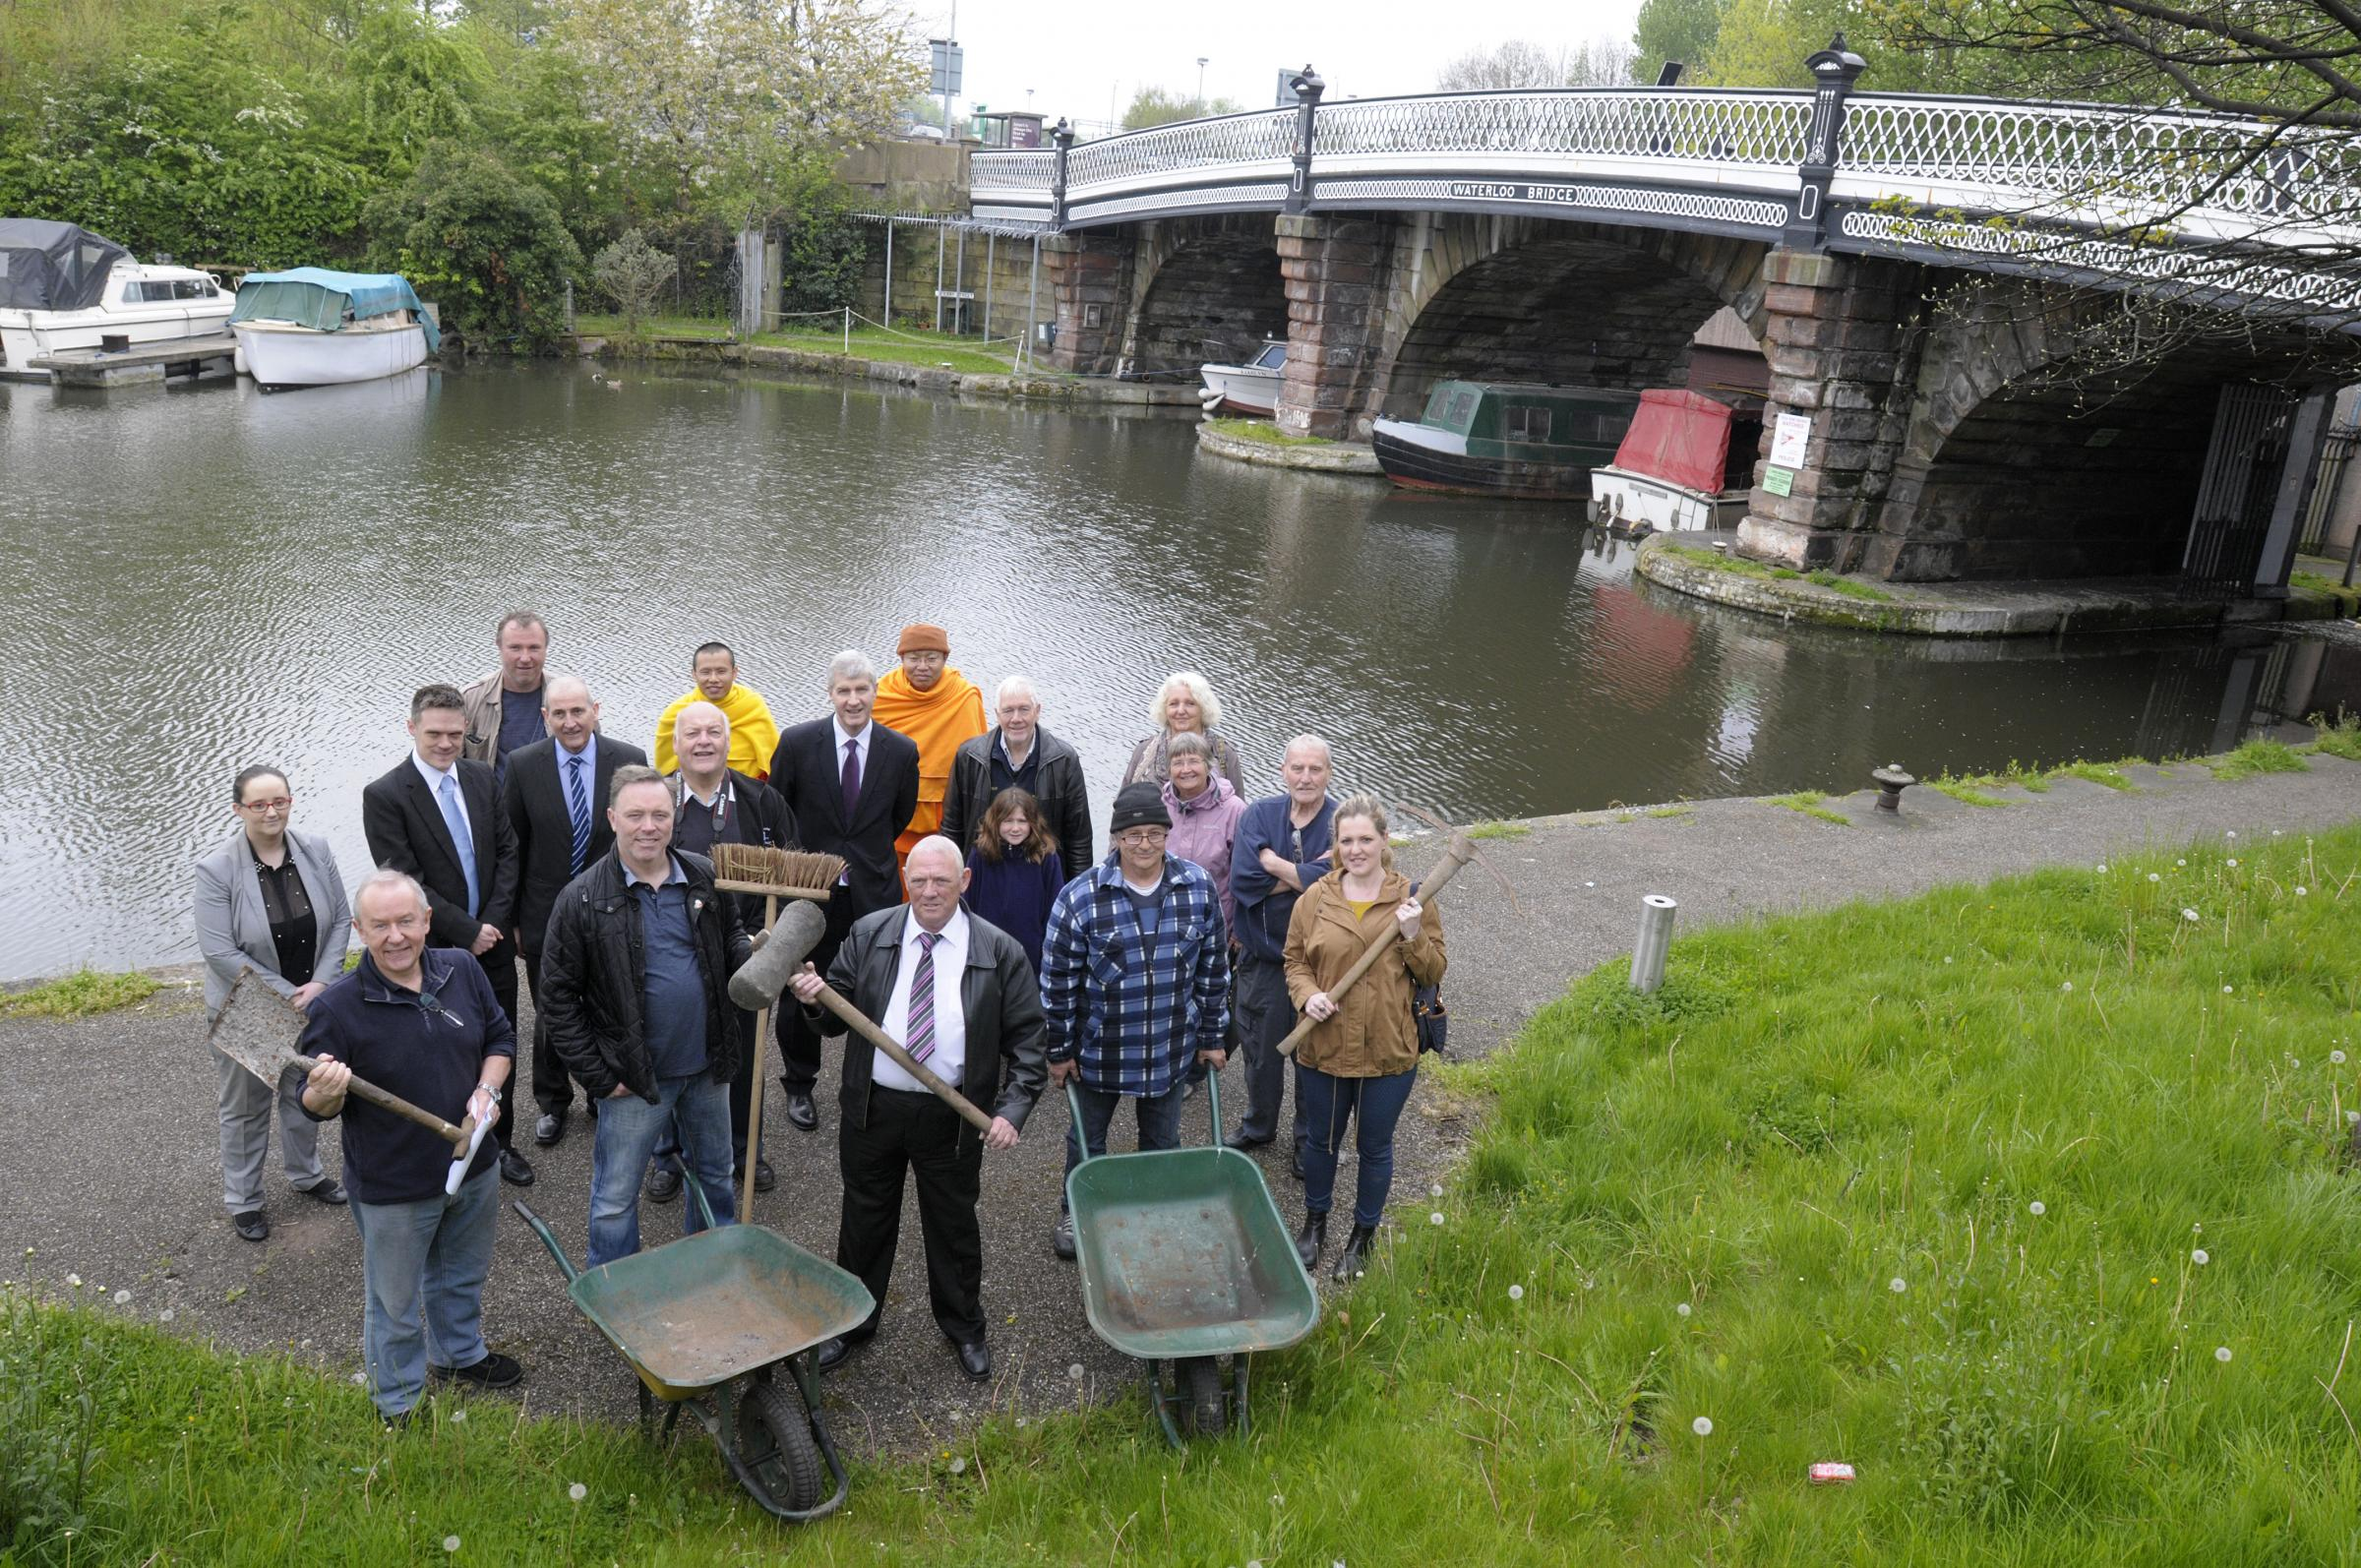 The Unlock Runcorn campaigners in 2014, aiming to get the canals used again